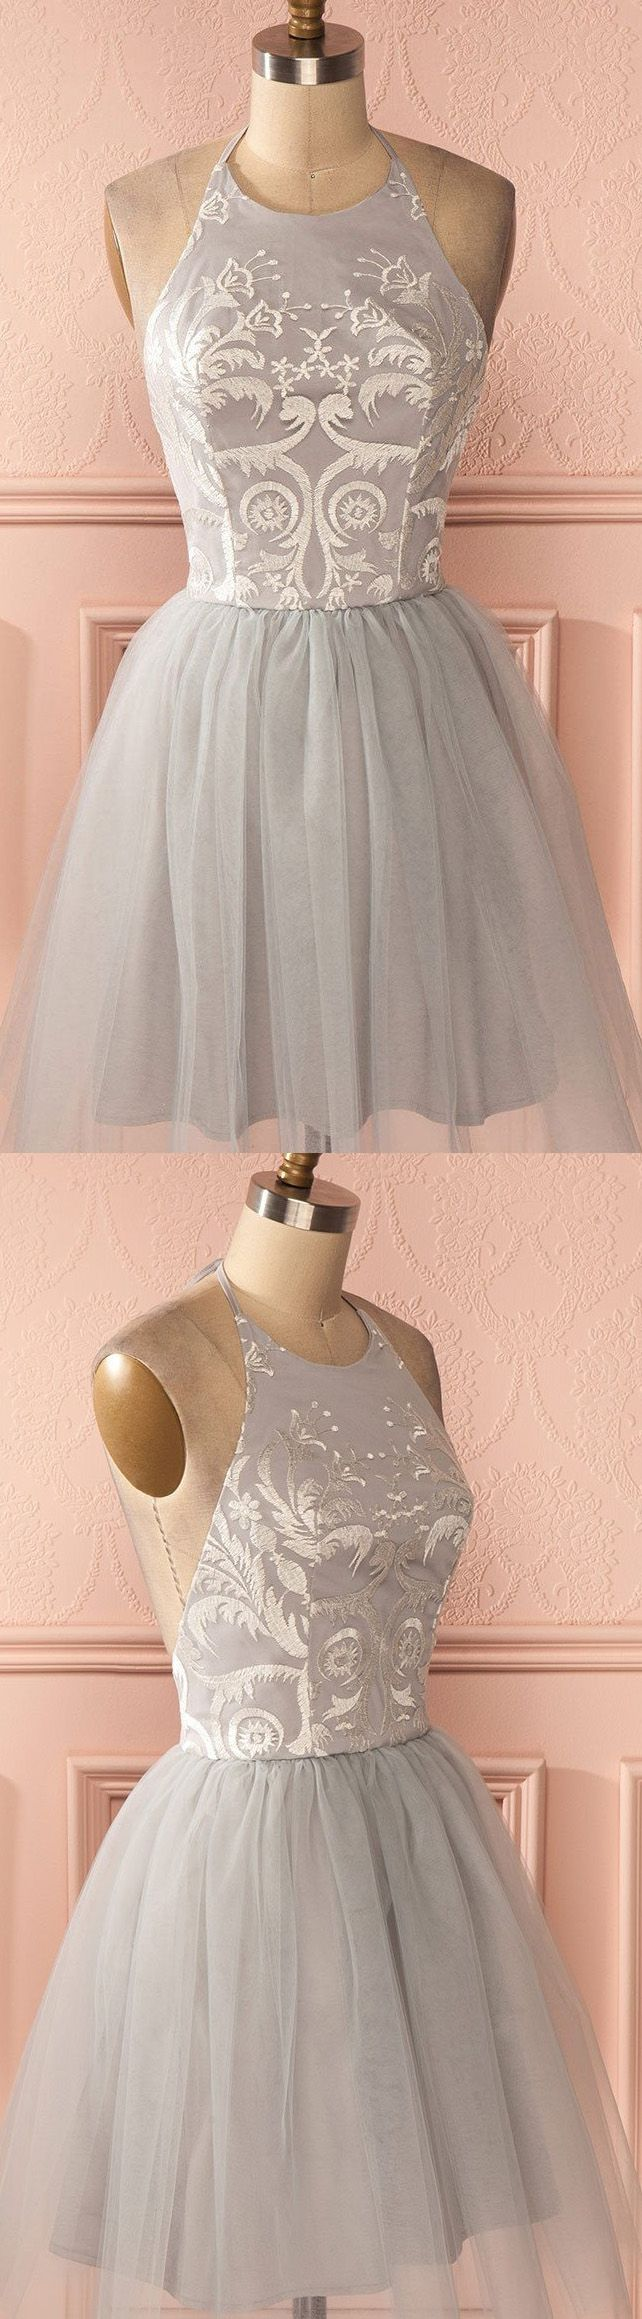 Sleeveless homecoming dresses silver sleeveless prom dresses short